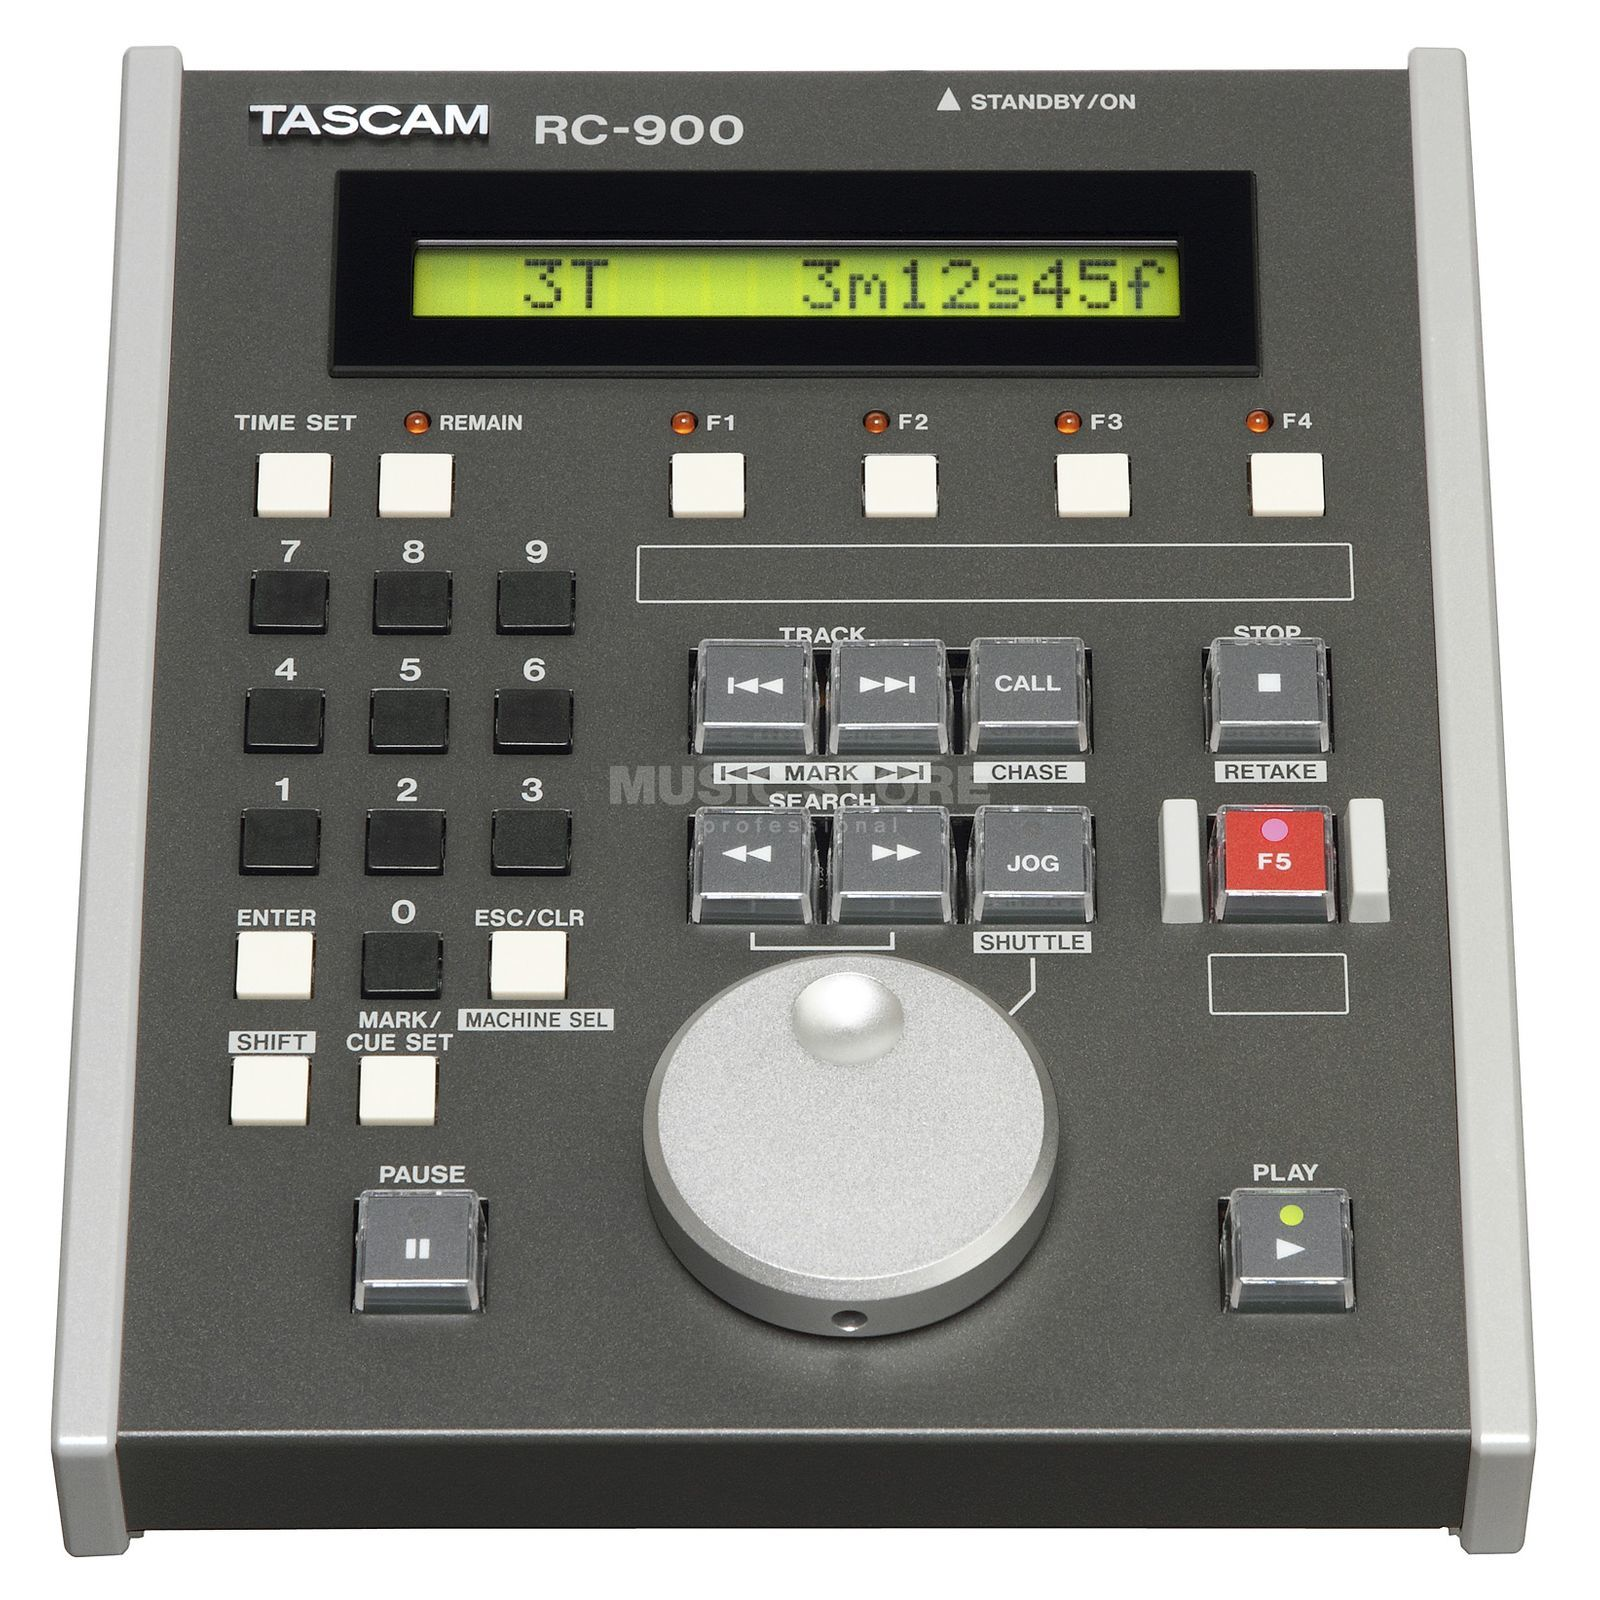 Tascam RC-900 Remote for Tascam Recorder/Player Produktbillede